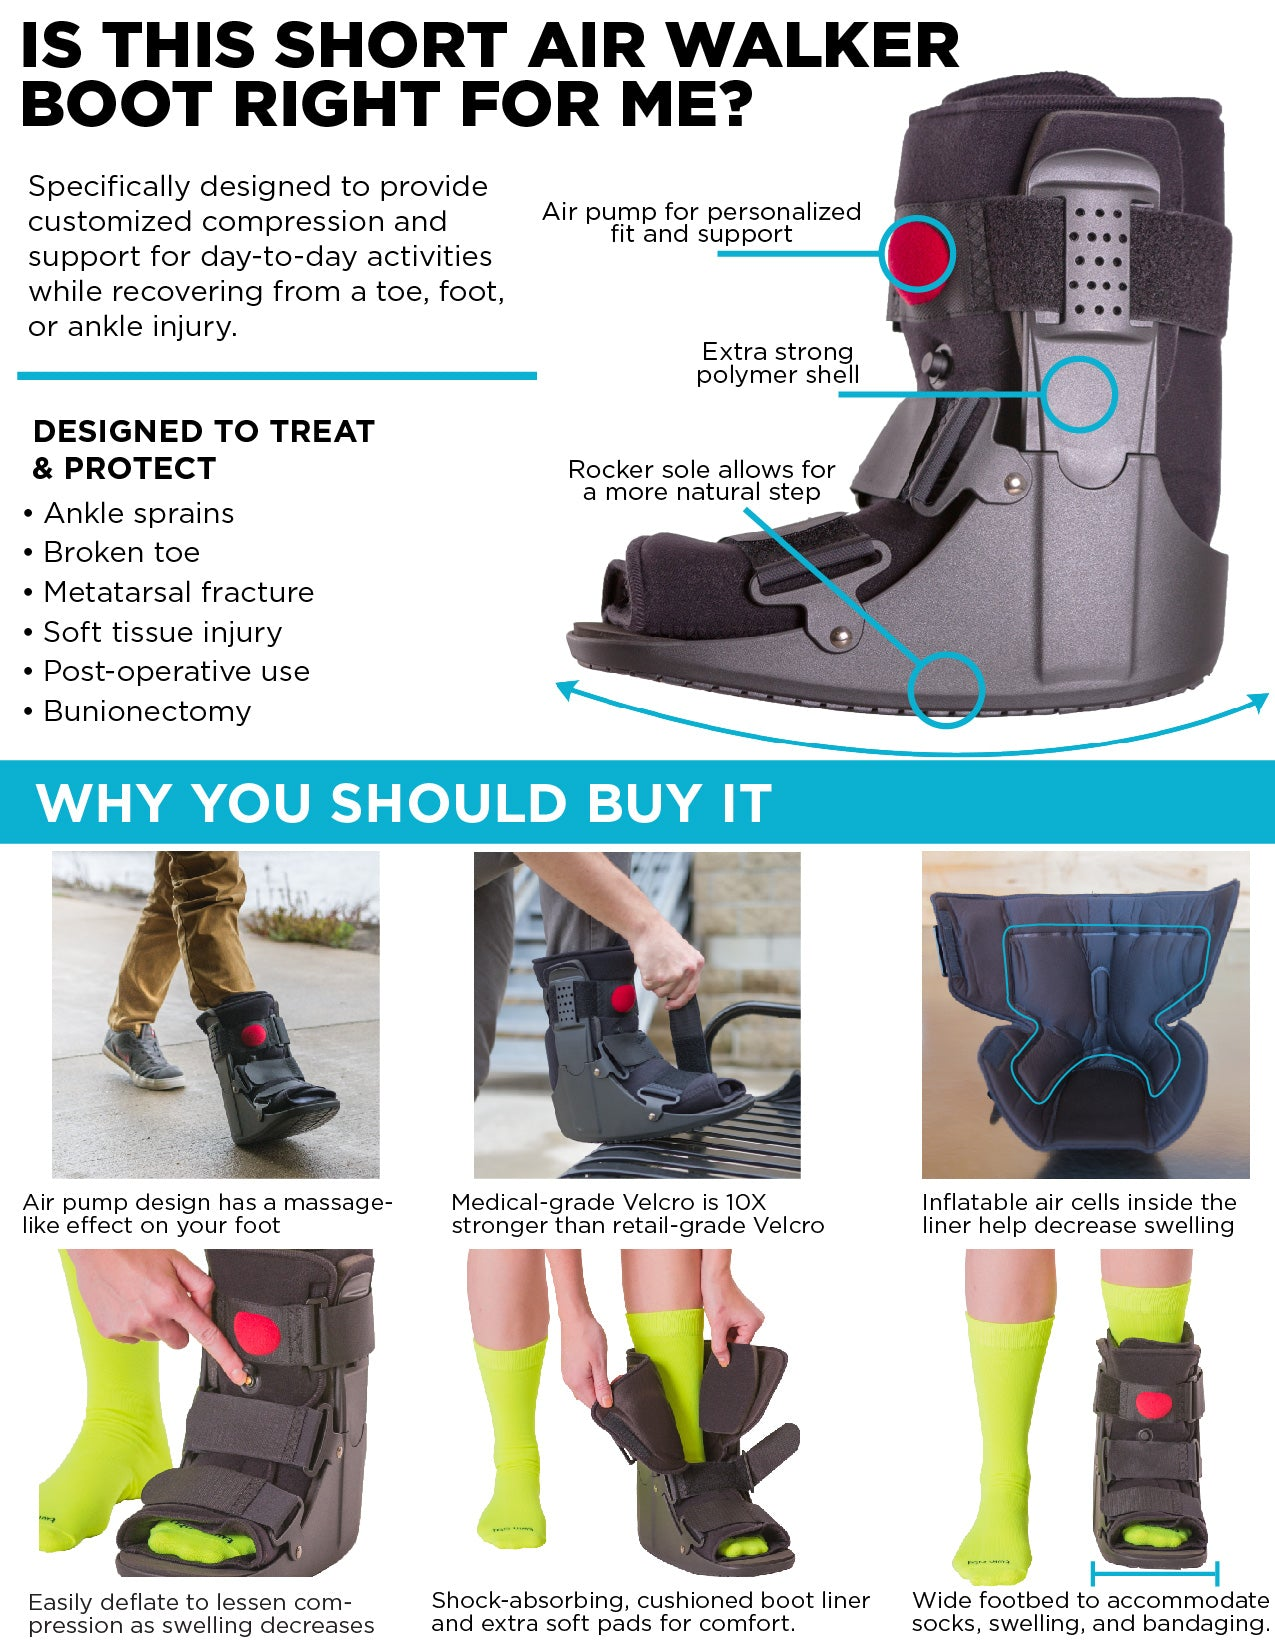 features that make this the best non-air walker boot